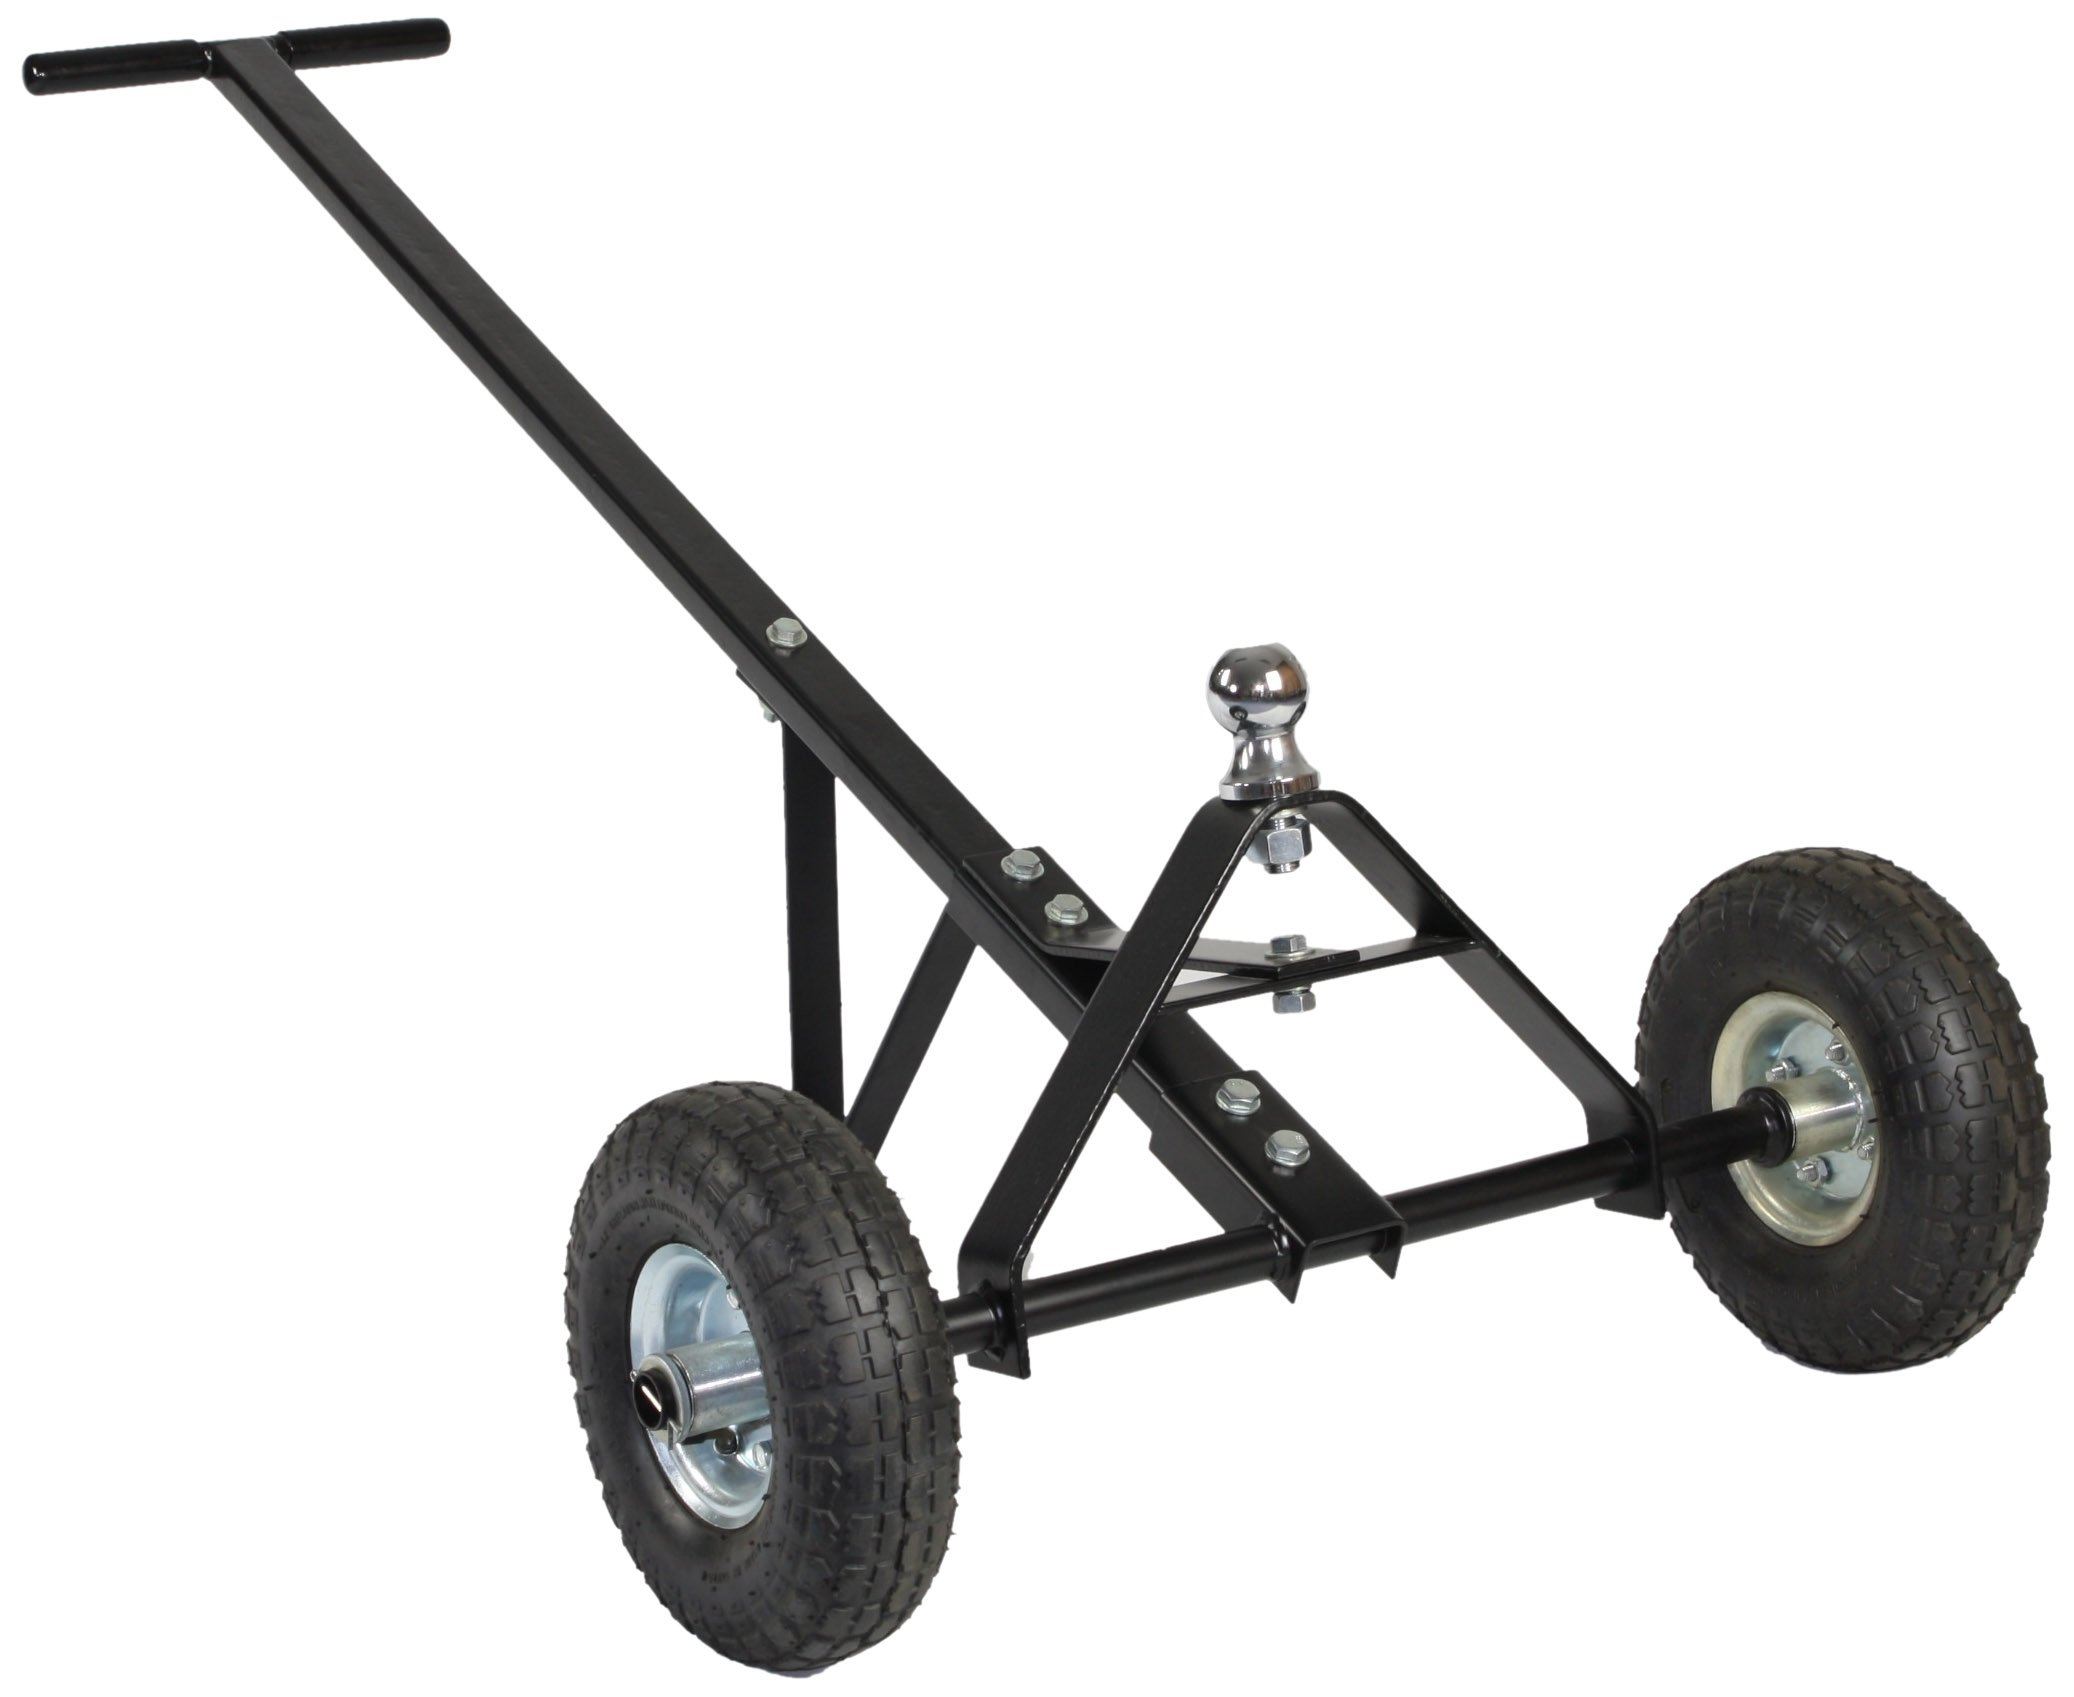 MaxxHaul 70225 Trailer Dolly With 12'' Pneumatic Tires - 600 Lb. Maximum Capacity